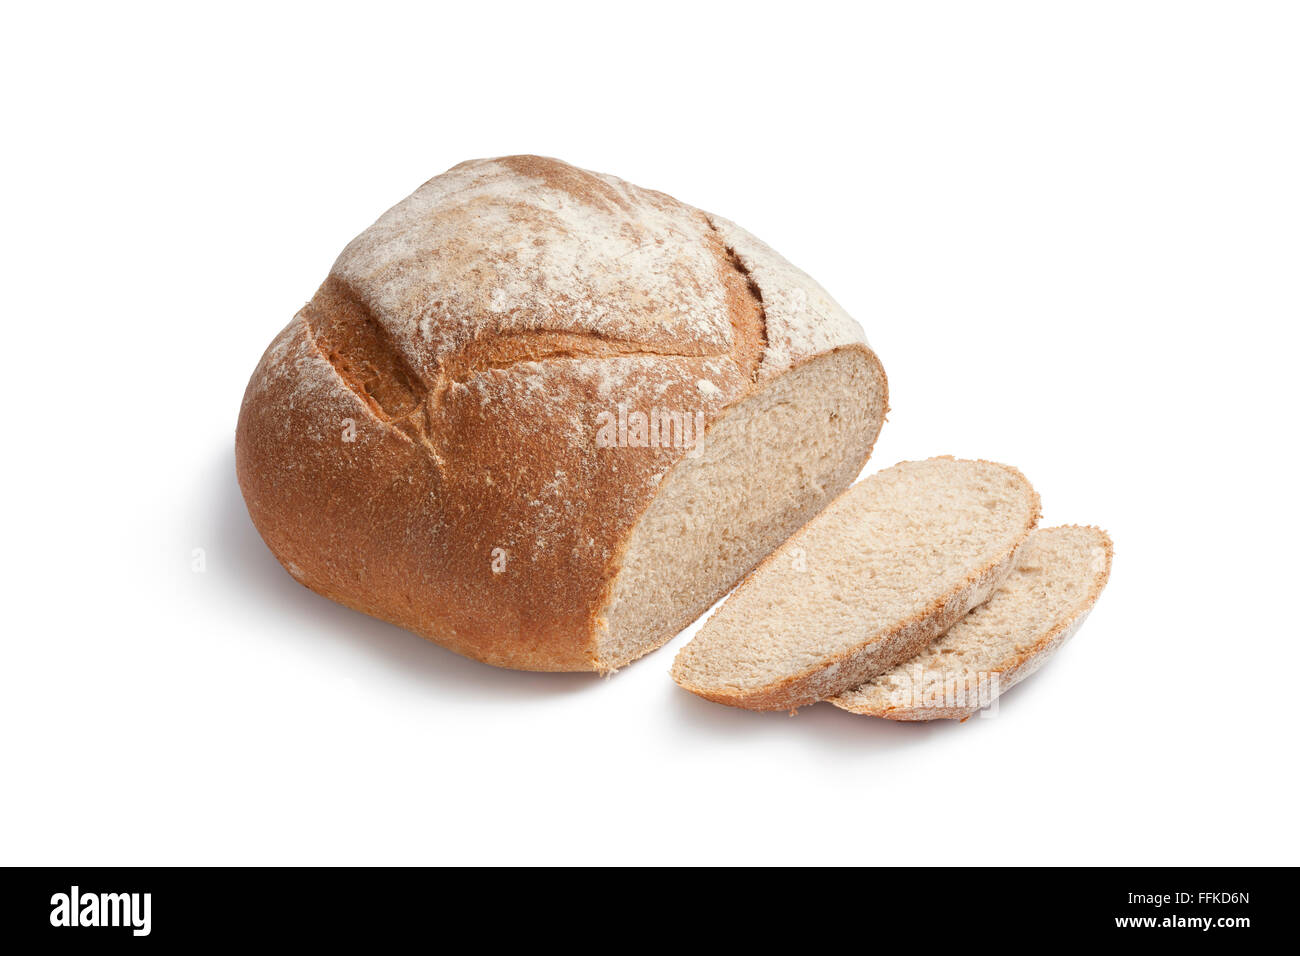 Whole Fresh Artisan Loaf Of Bread And Slices On White Background